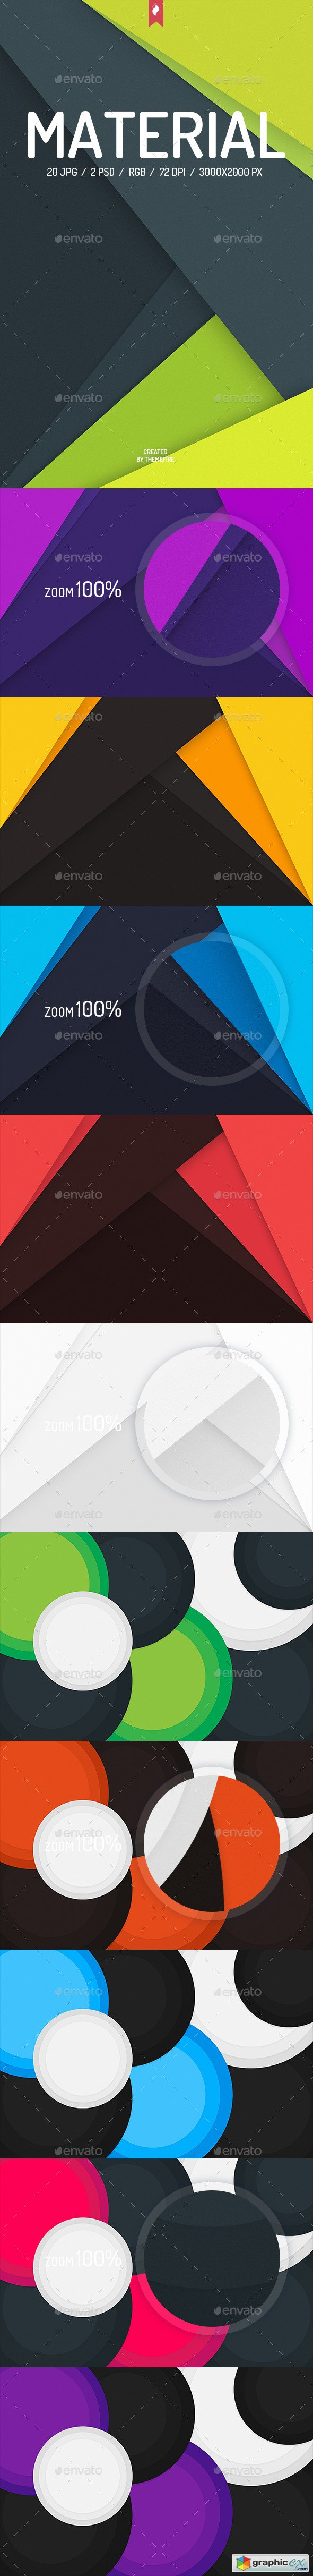 20 Material Design Backgrounds